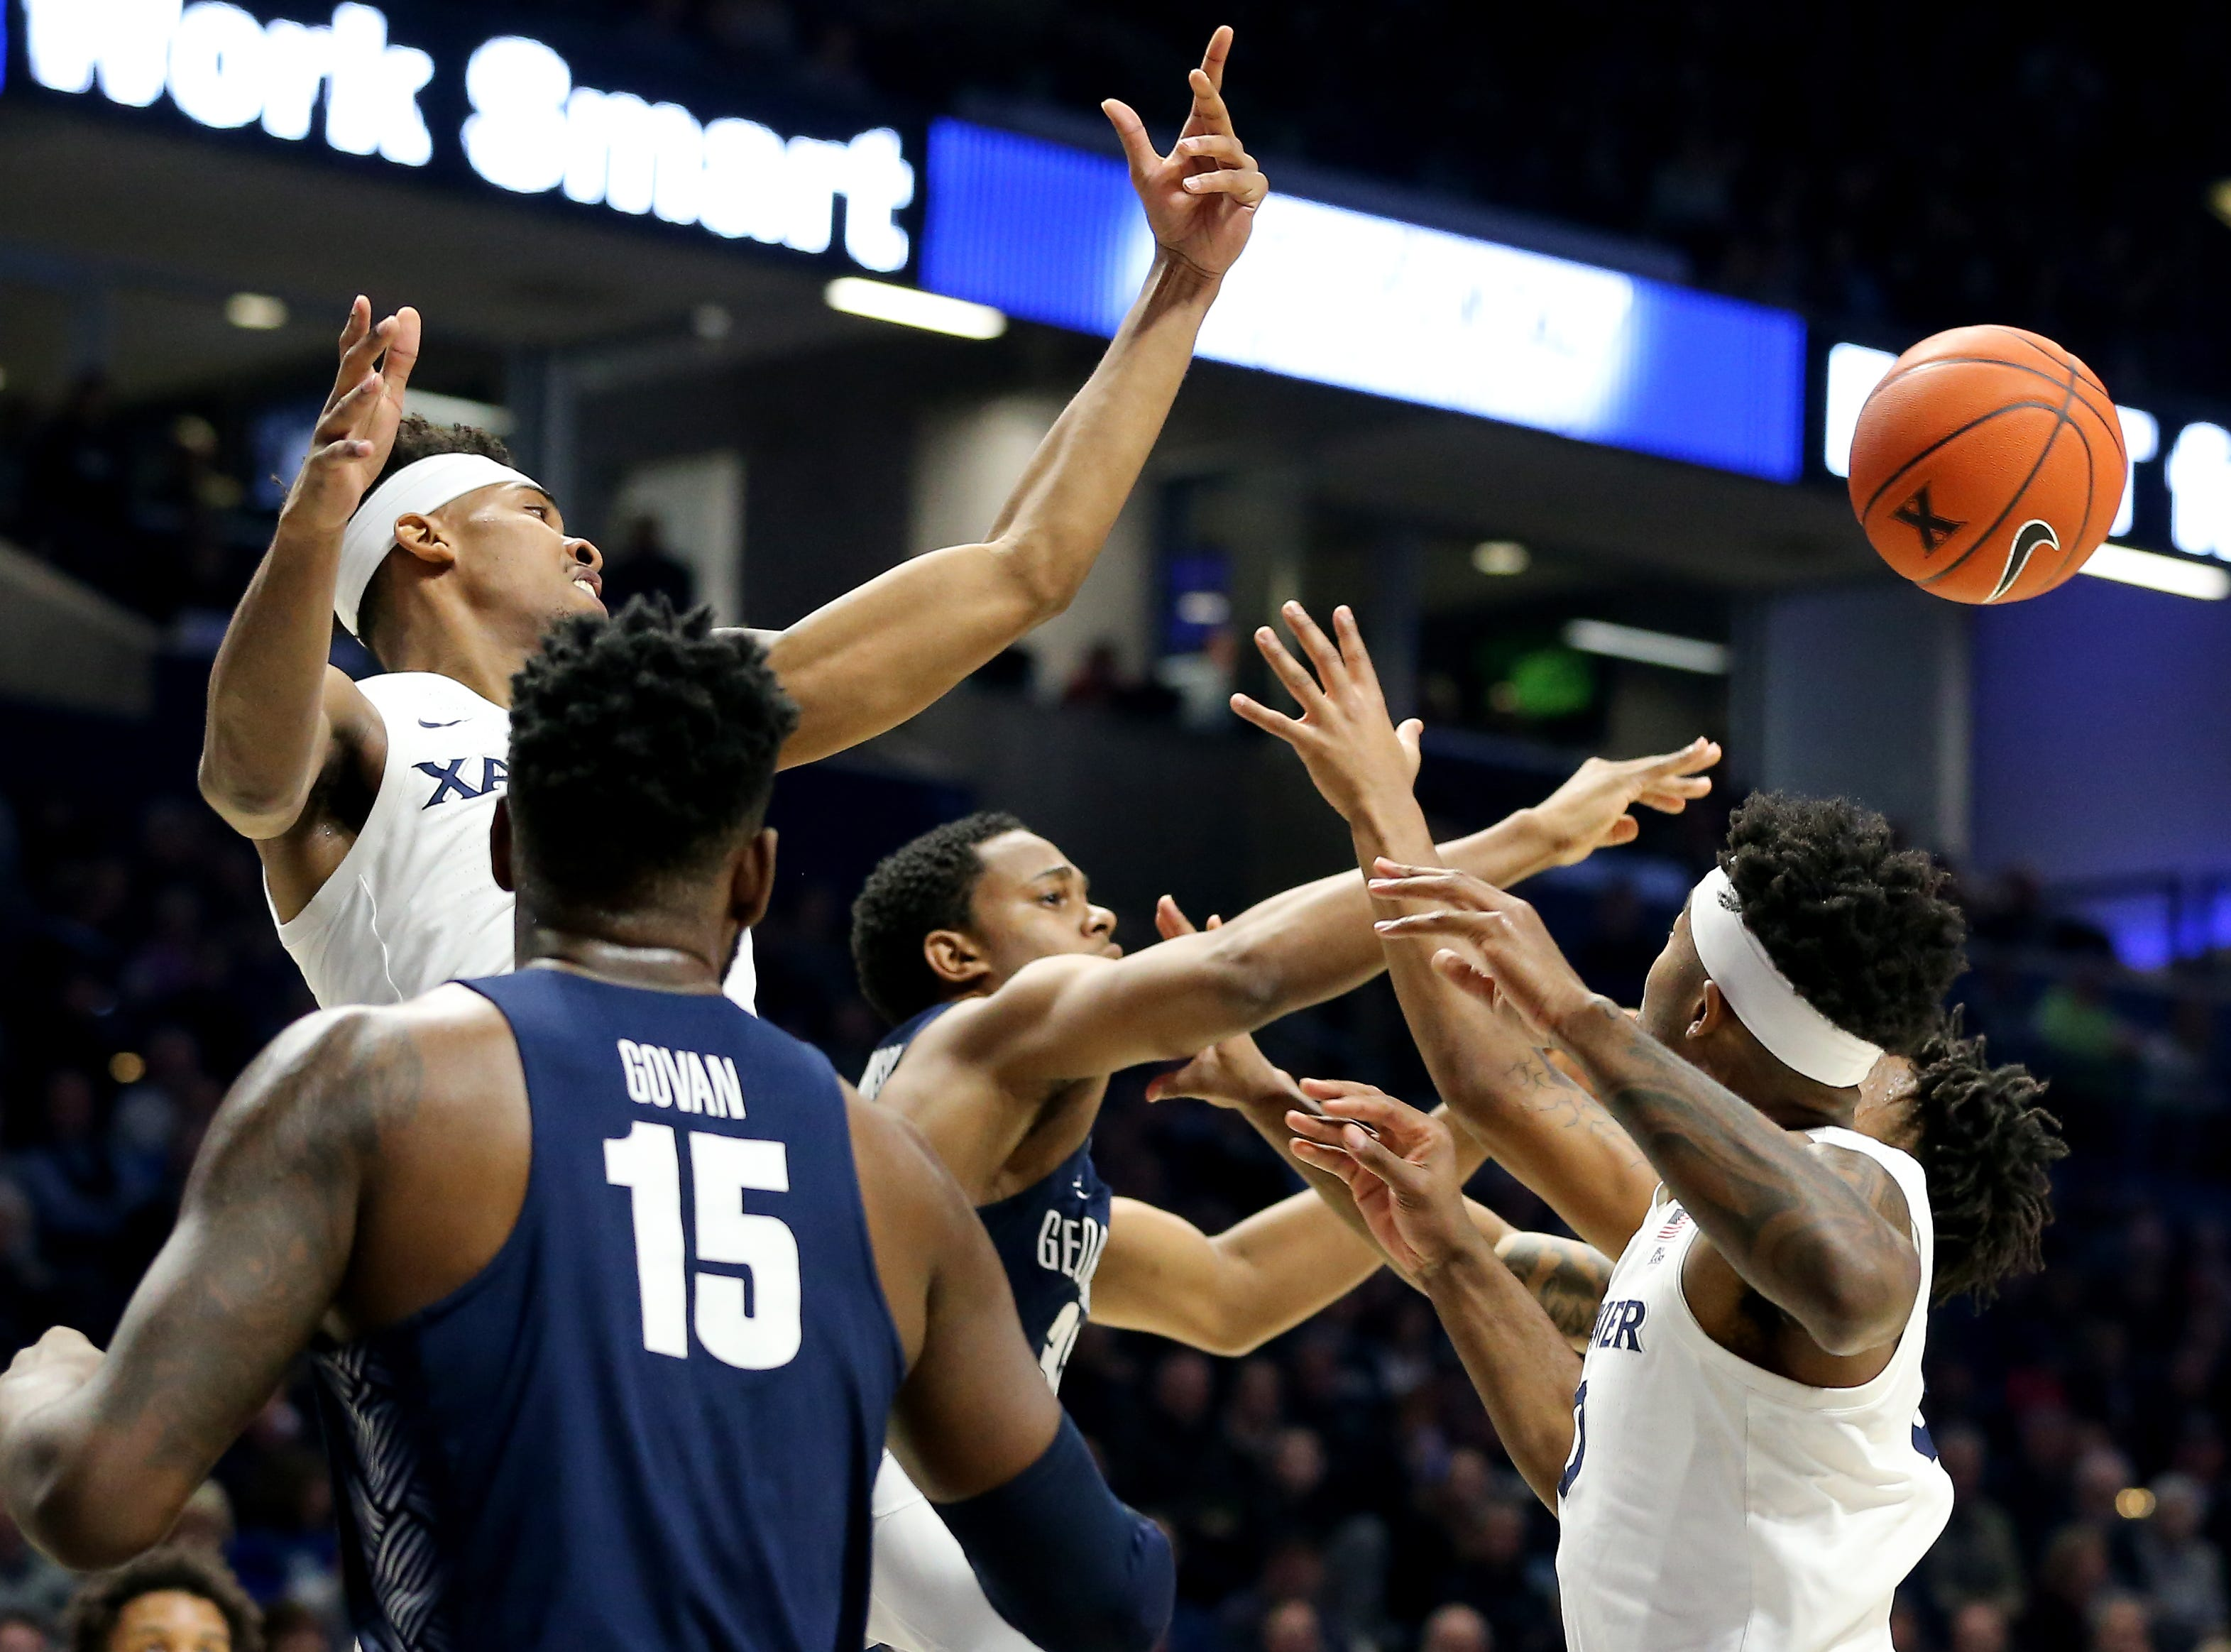 Xavier Musketeers guard Paul Scruggs (1) and Xavier Musketeers forward Tyrique Jones (0) reach for a rebound in the first half of an NCAA basketball game against the Georgetown Hoyas, Wednesday, Jan. 9, 2019, at the Cintas Center in Cincinnati.